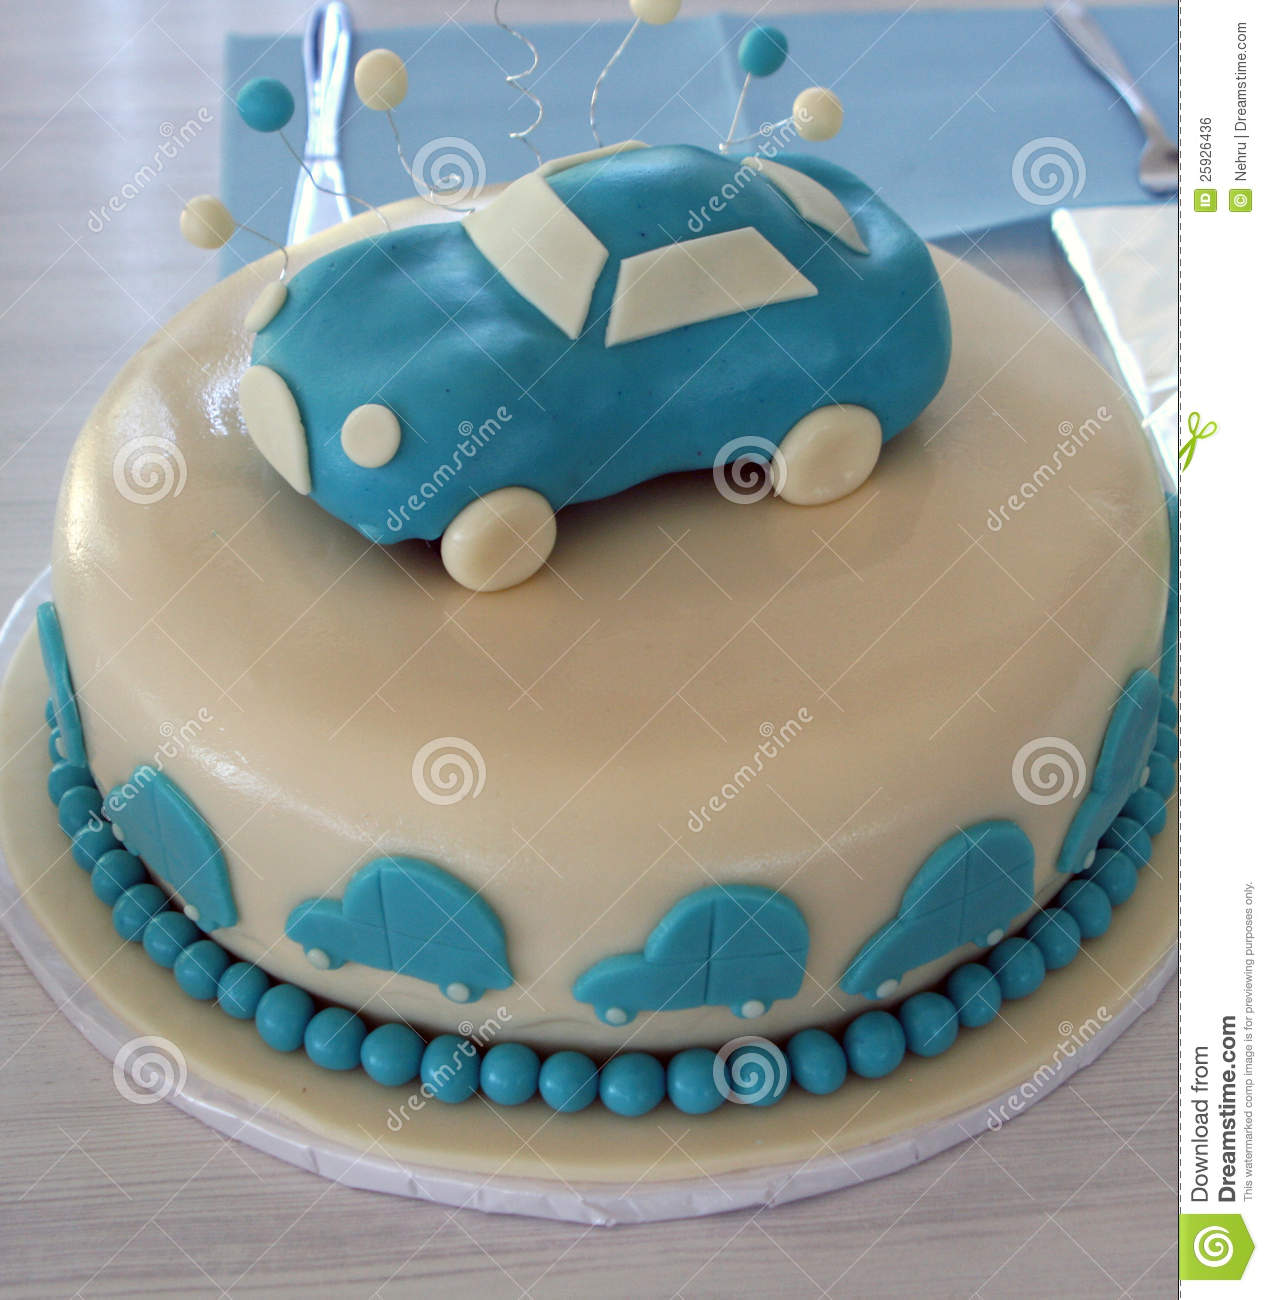 Cake With Car Decorations Royalty Free Stock Image Image